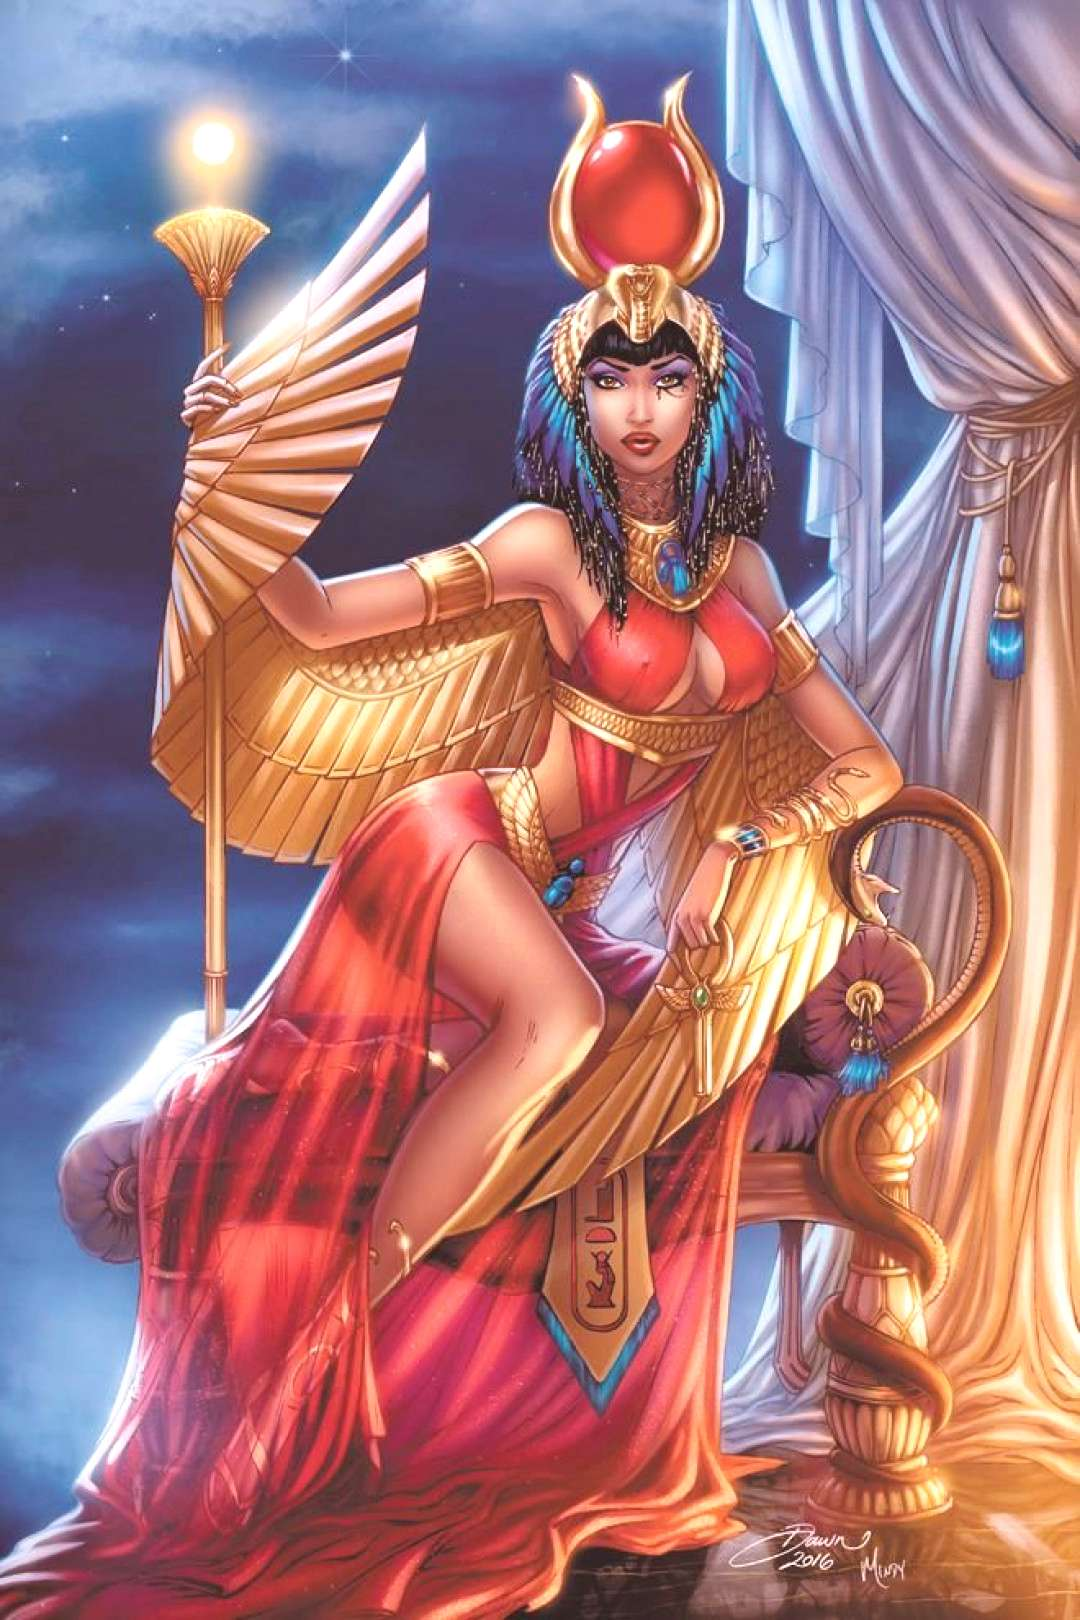 Chronicles the life and first romances of the Egyptian Goddess Isis.